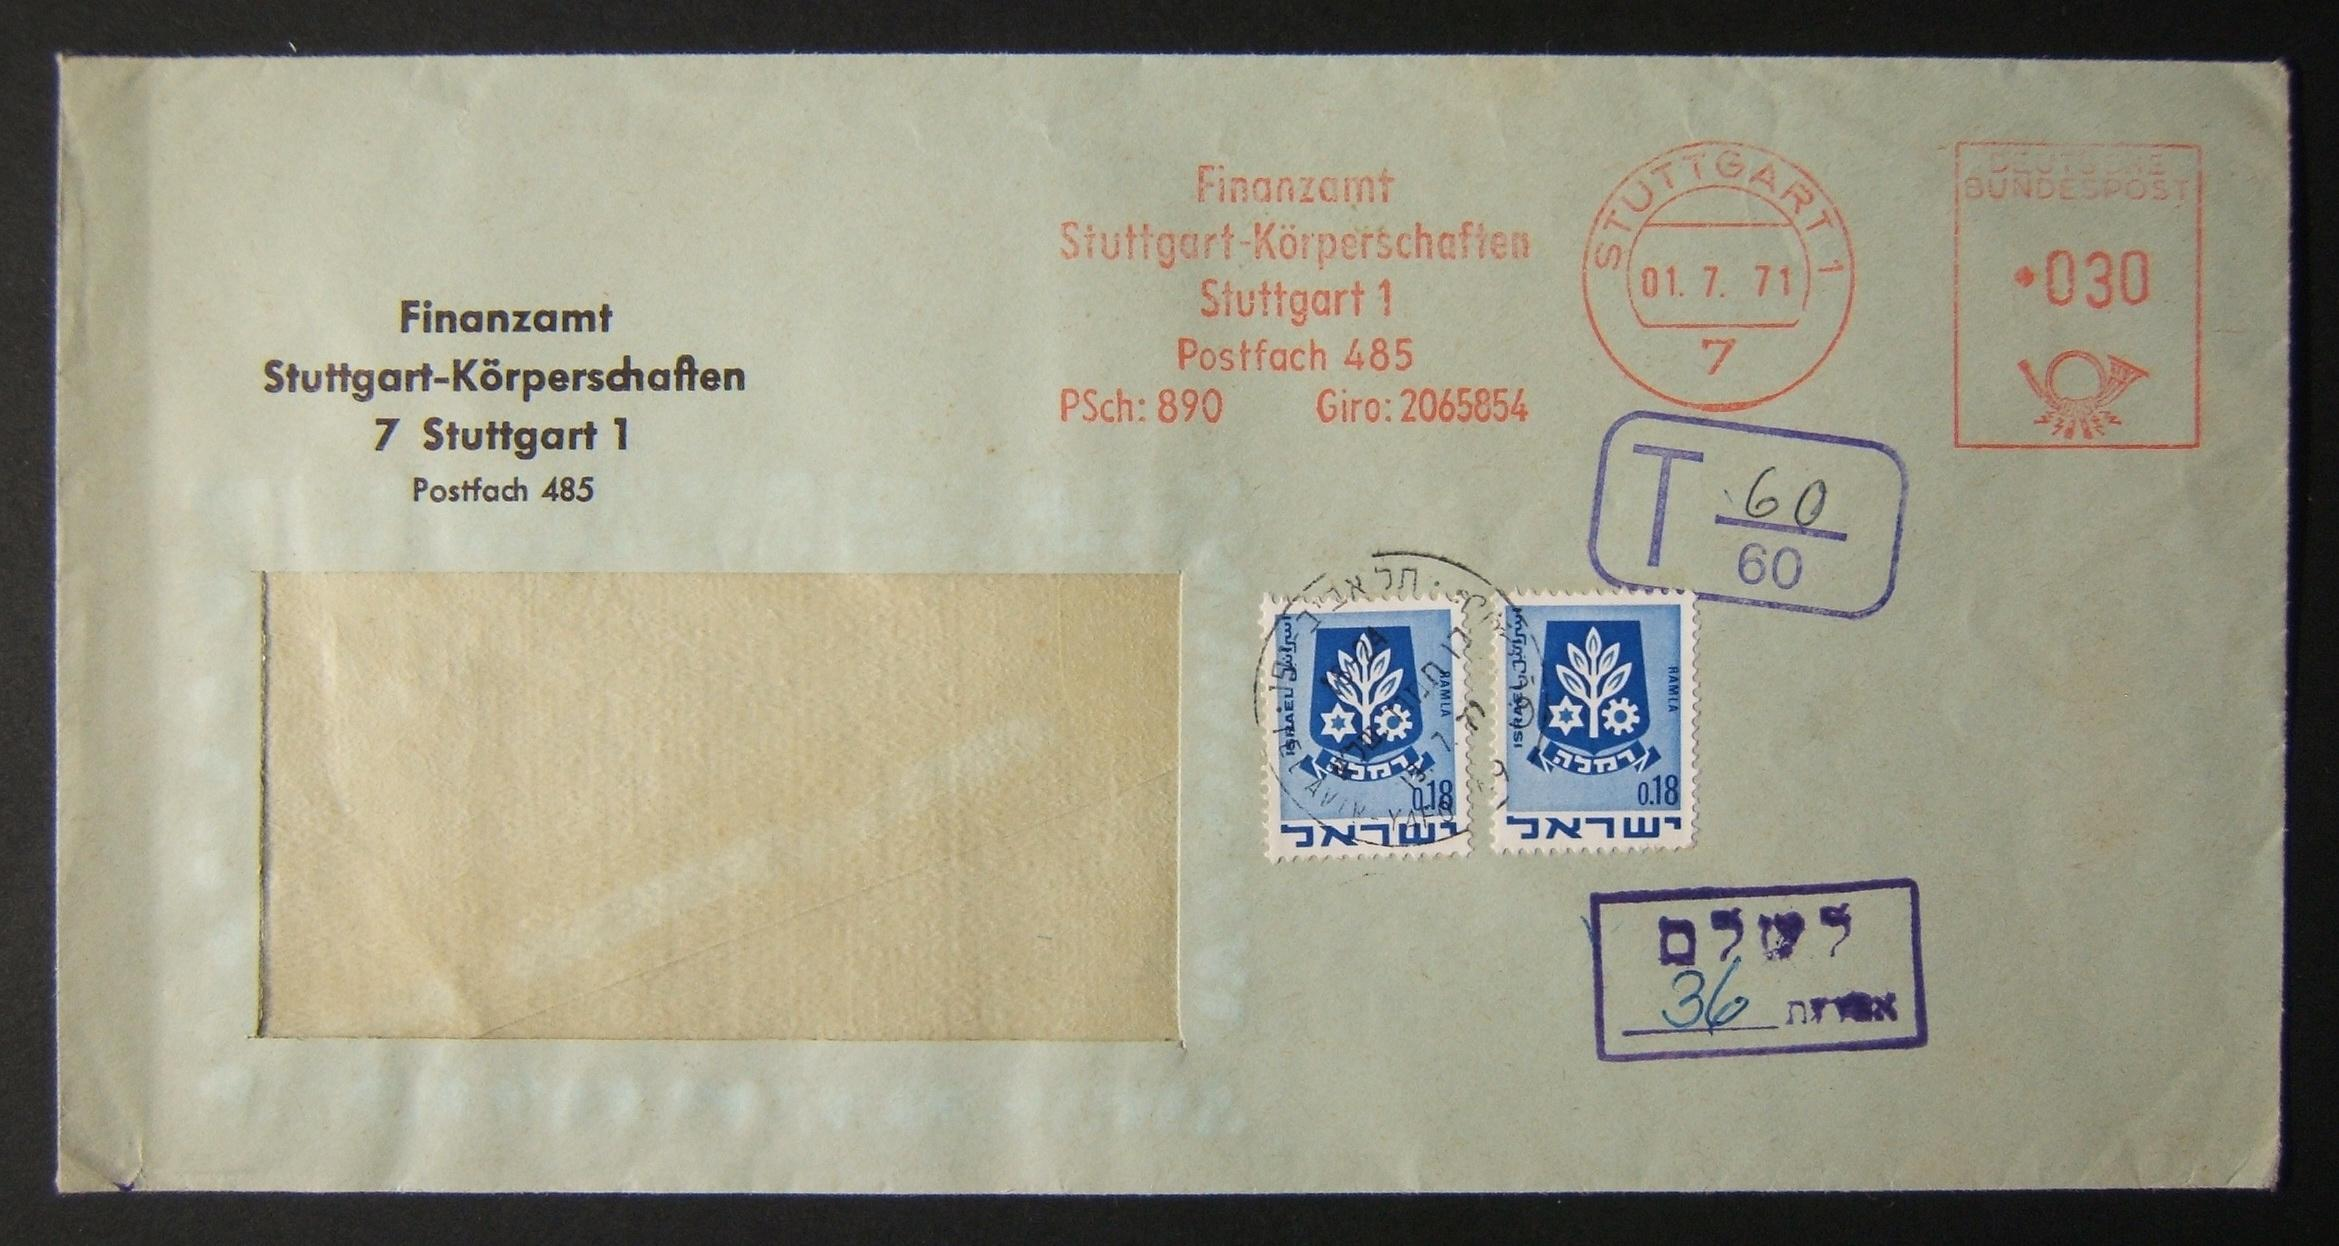 1971 incoming German taxed mail: 1-7-71 airmail(?) window commercial cover ex STUTTGART to TLV underfranked at 0.30DM and taxed 0.36L in Israel, paid 19-7-71 using2x 0.18L 1969 2nd